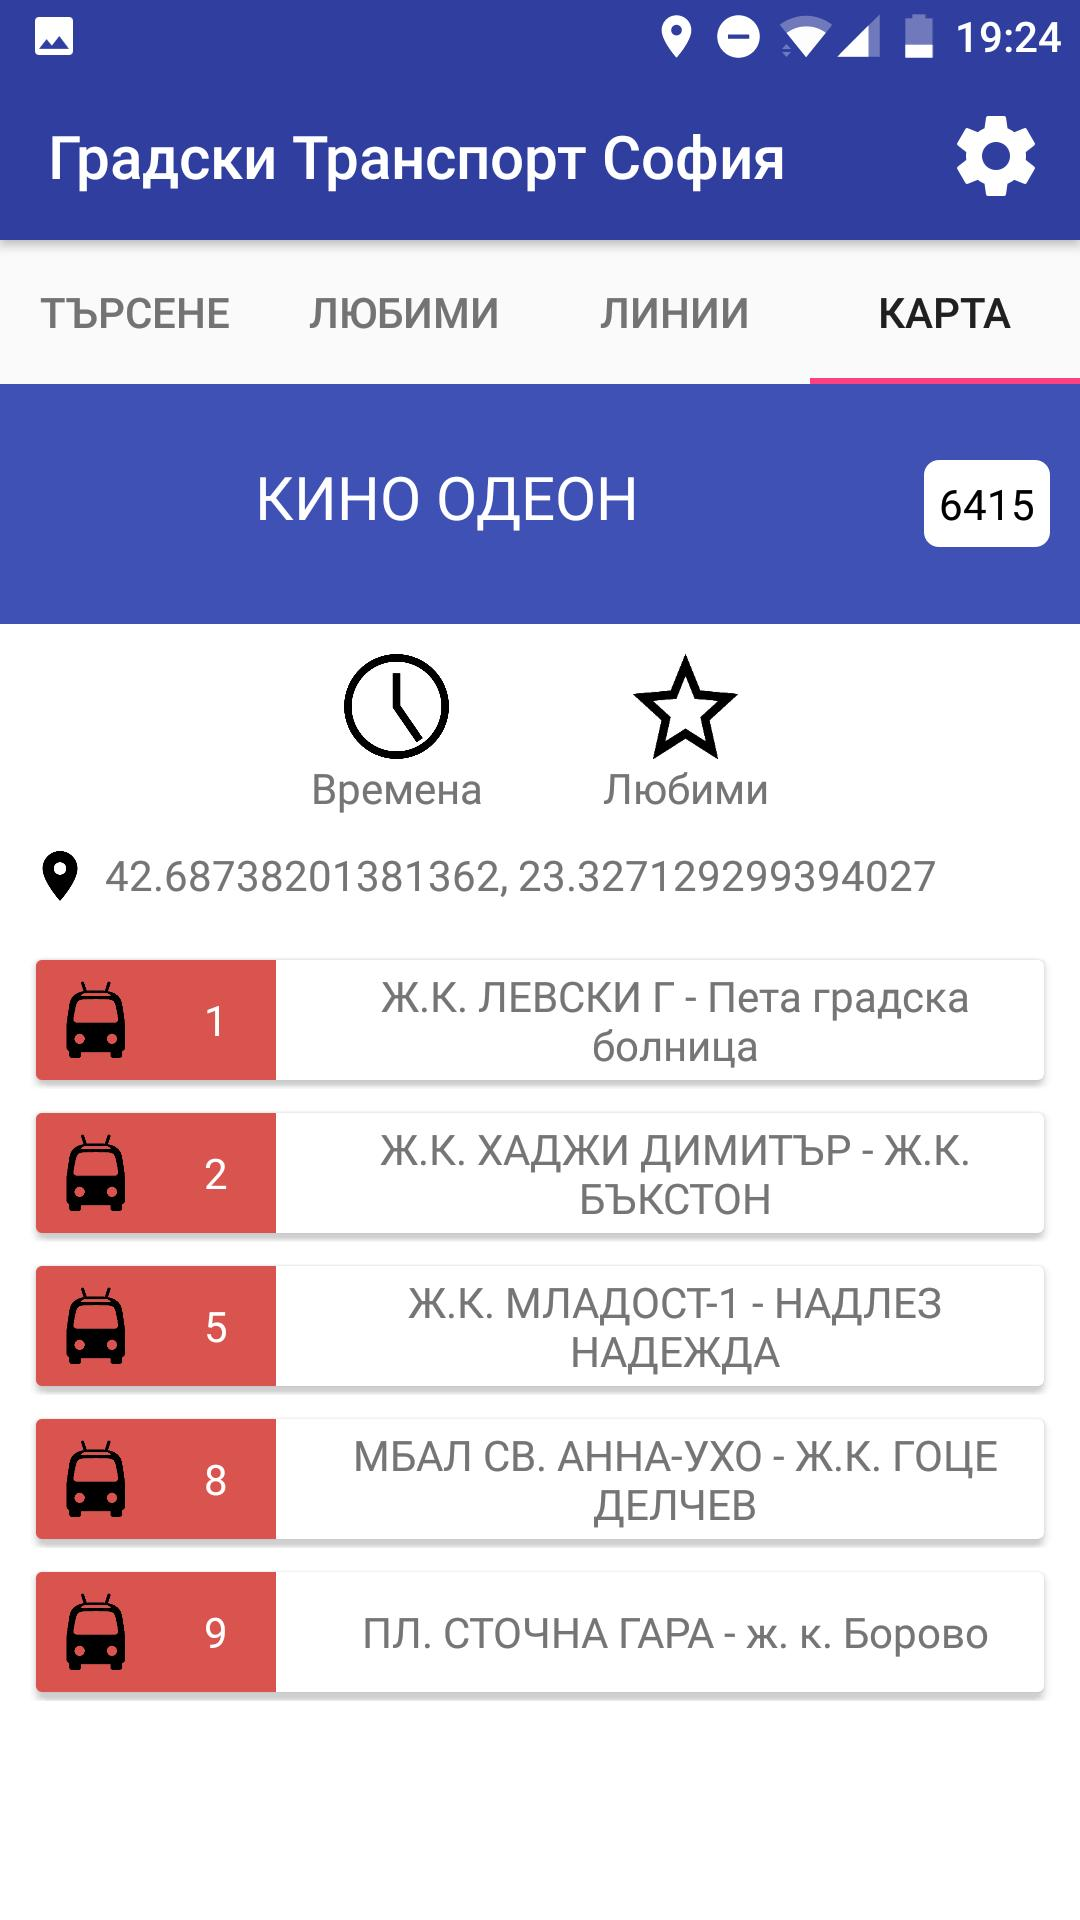 Sofia Public Transport for Android - APK Download